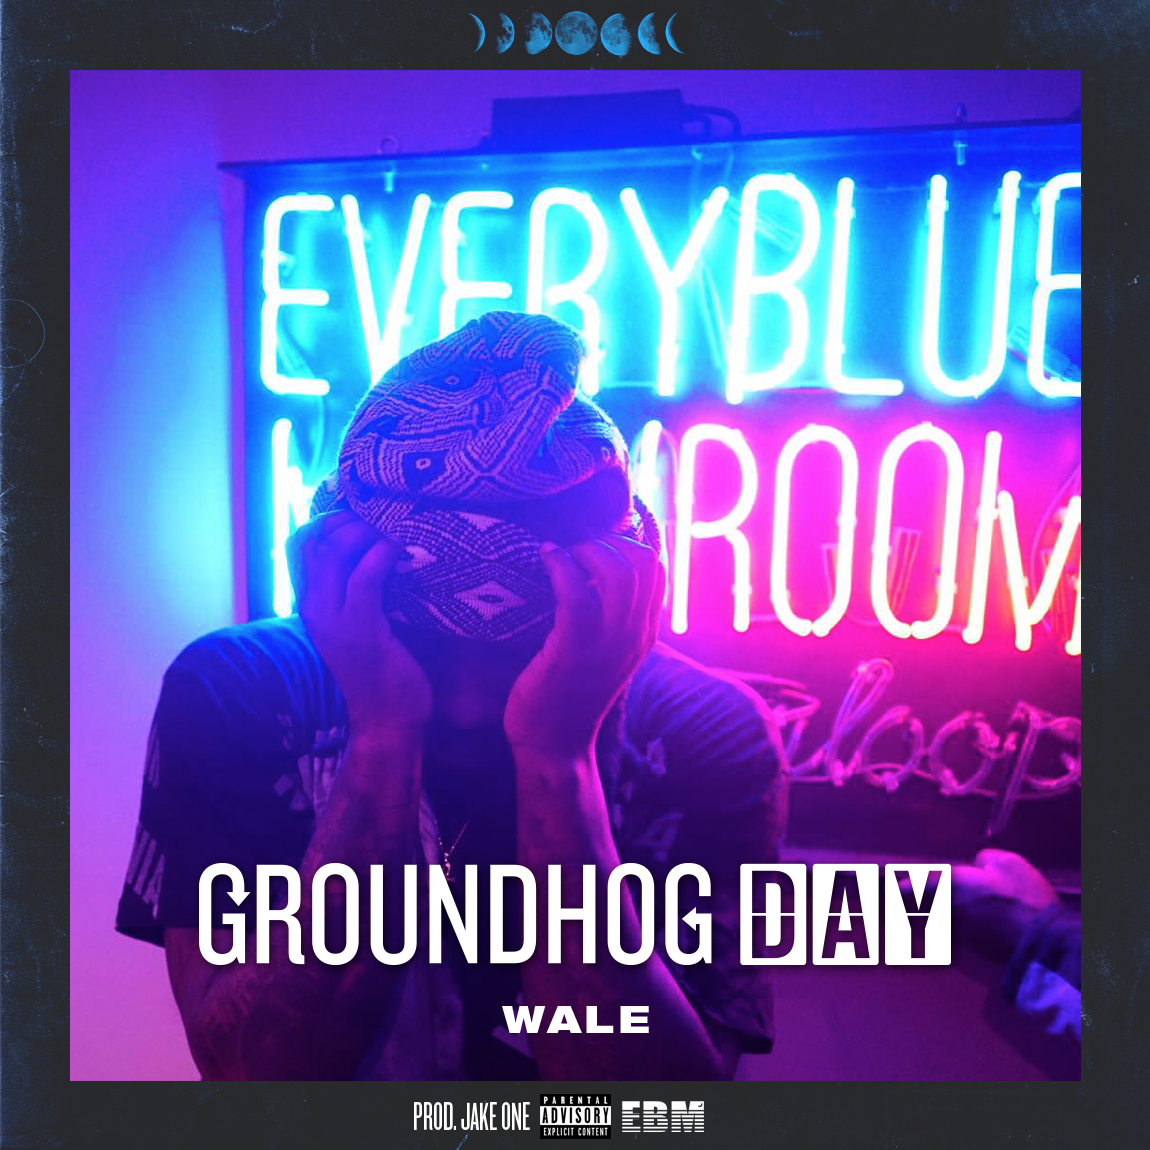 Official single cover artwork for Wale's J Cole response track titled Groundhog Day. Cover features custom text to represent repetition.